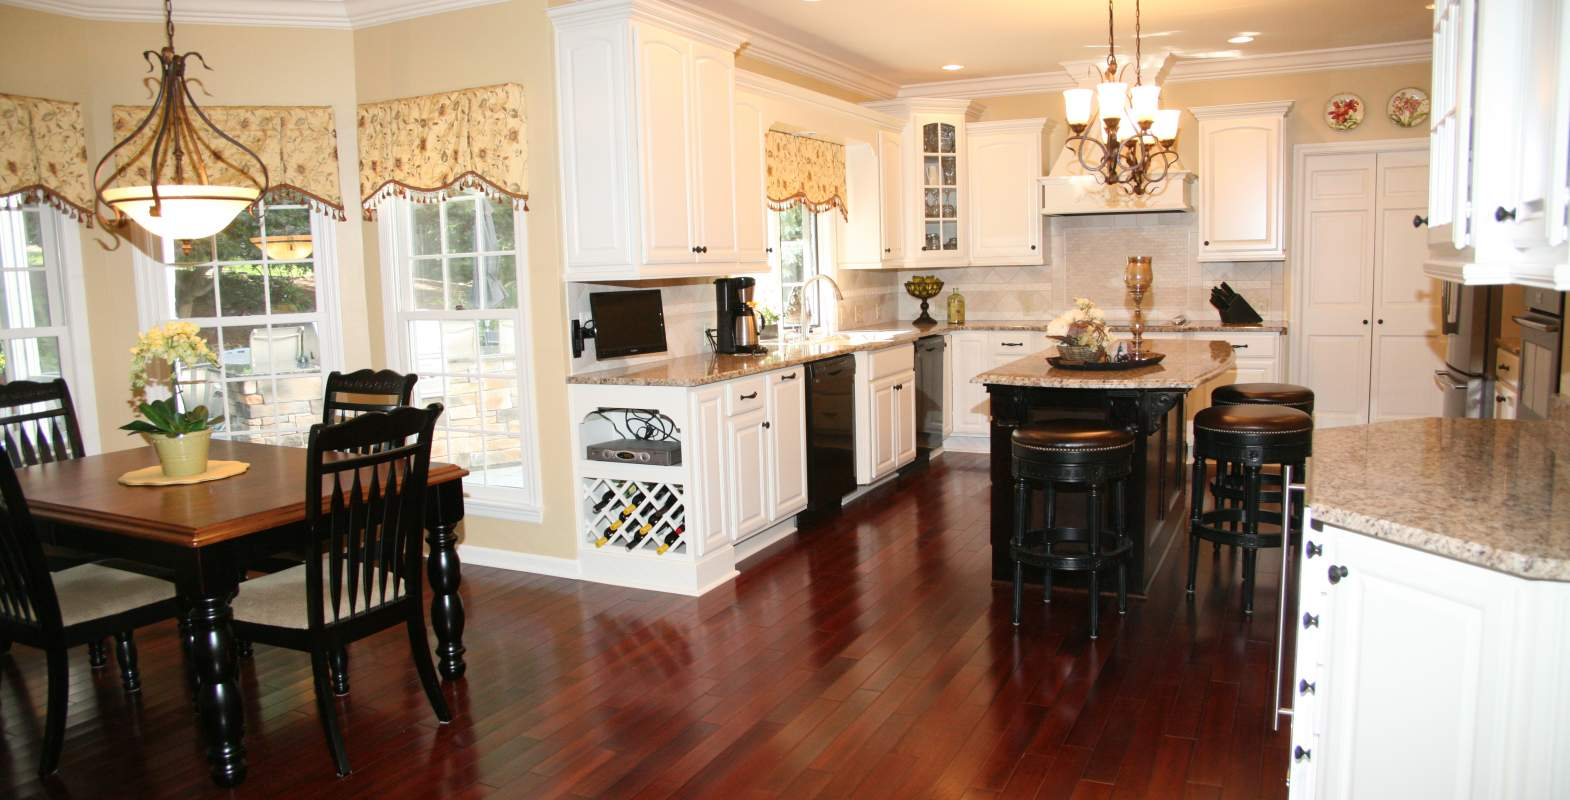 Kitchen Design Jobs Buffalo Ny Repp Renovations Buffalo Ny Design Build Kitchen